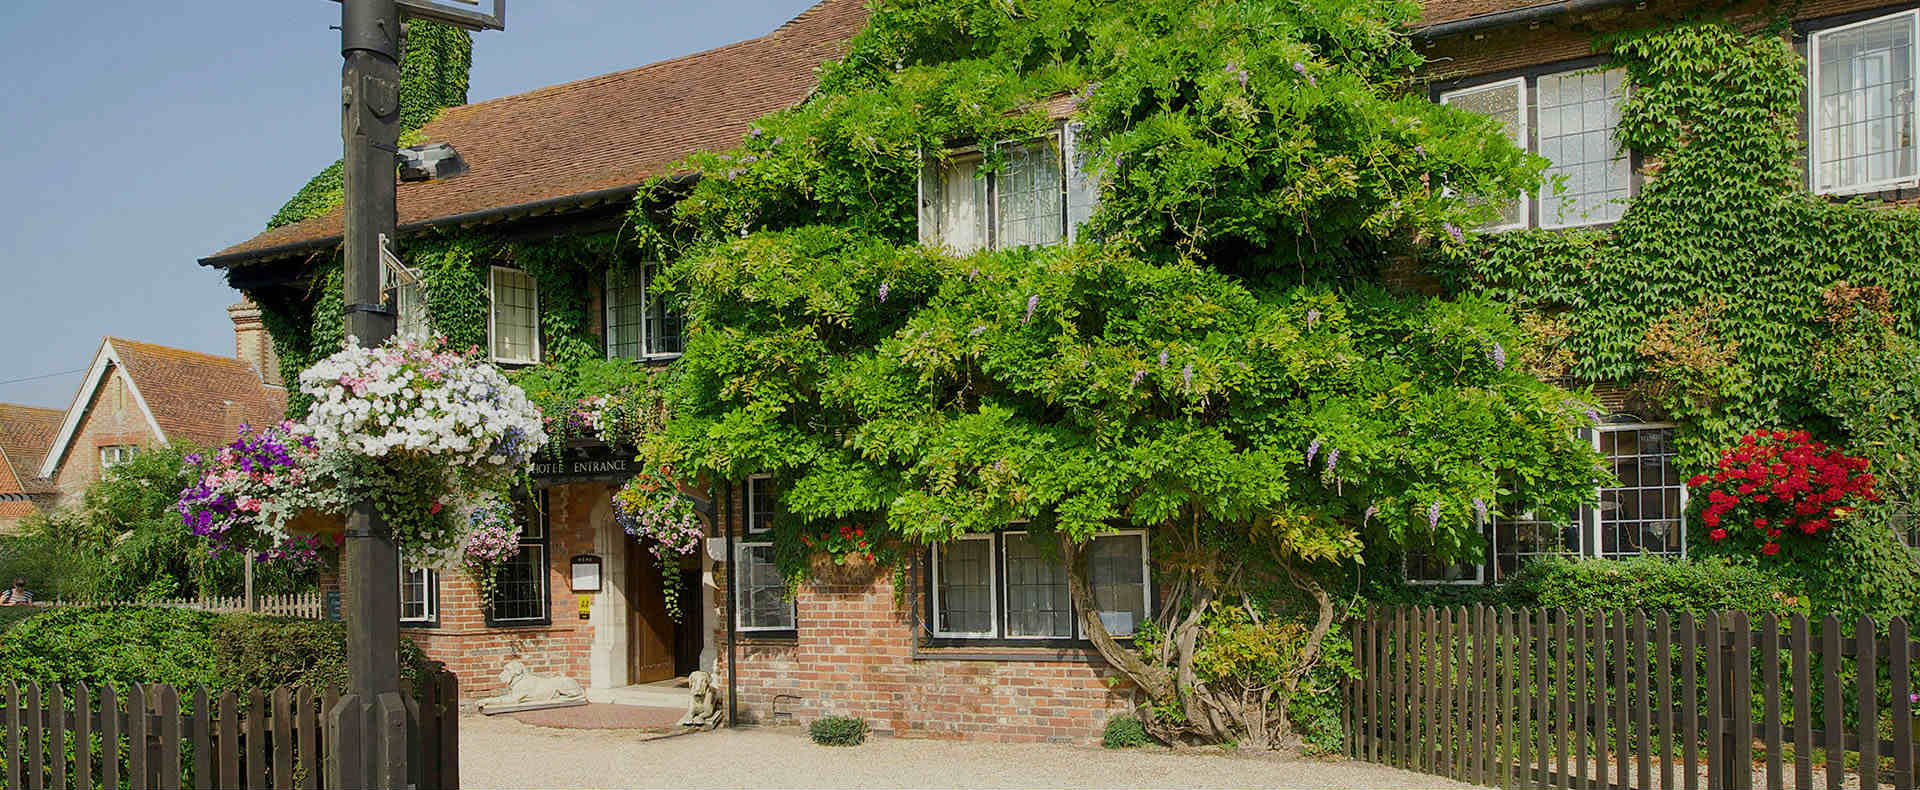 Montagu Arms Hotel | New Forest